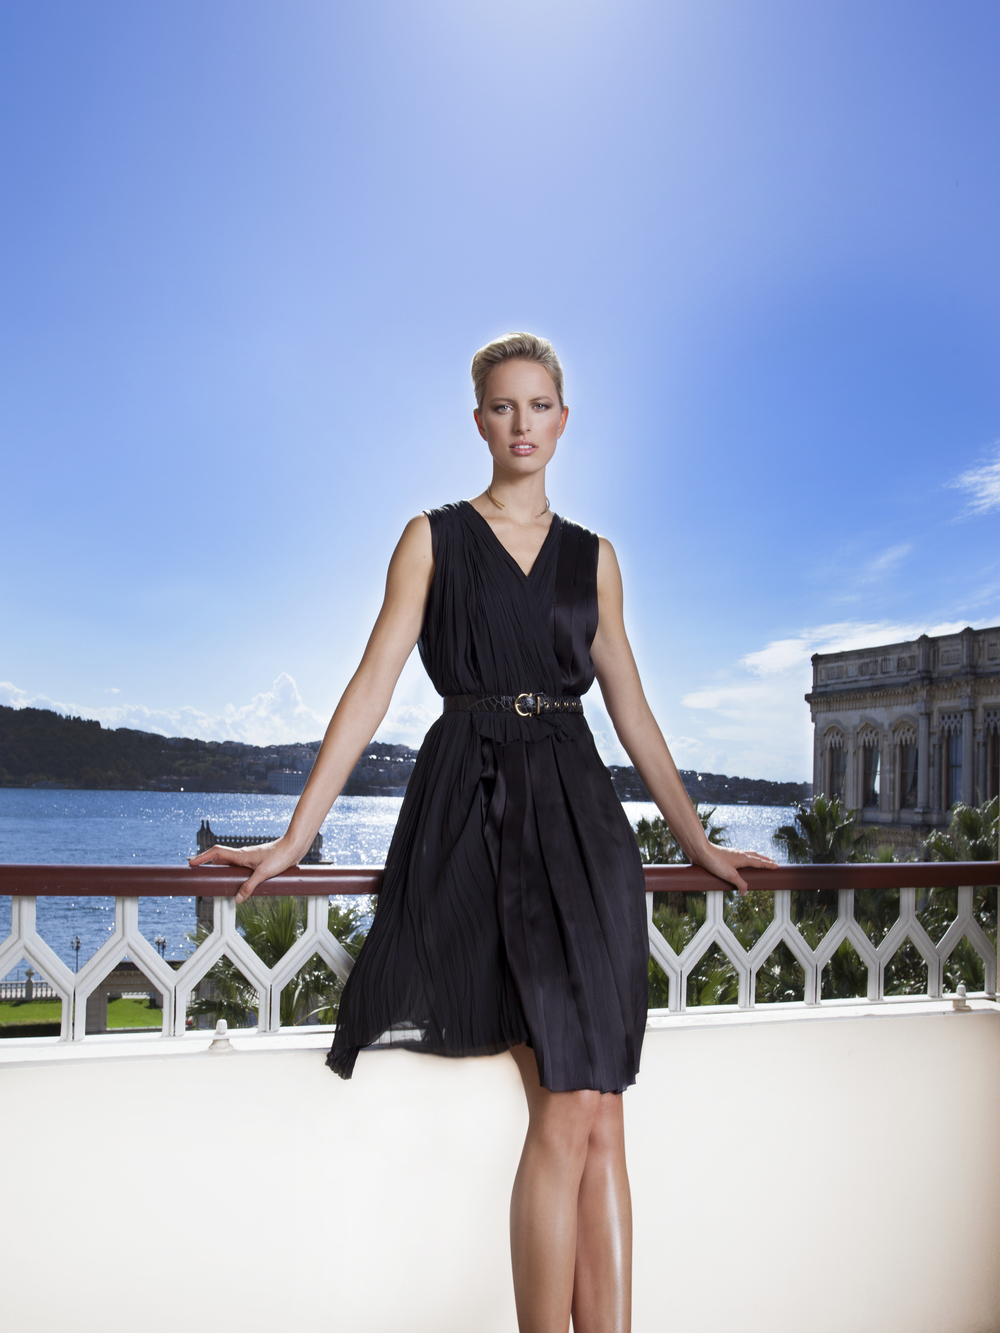 Karolina Kurkova - Karolina by Karolina Kurkova Fragrance Presentation in Istanbul - high res.jpg